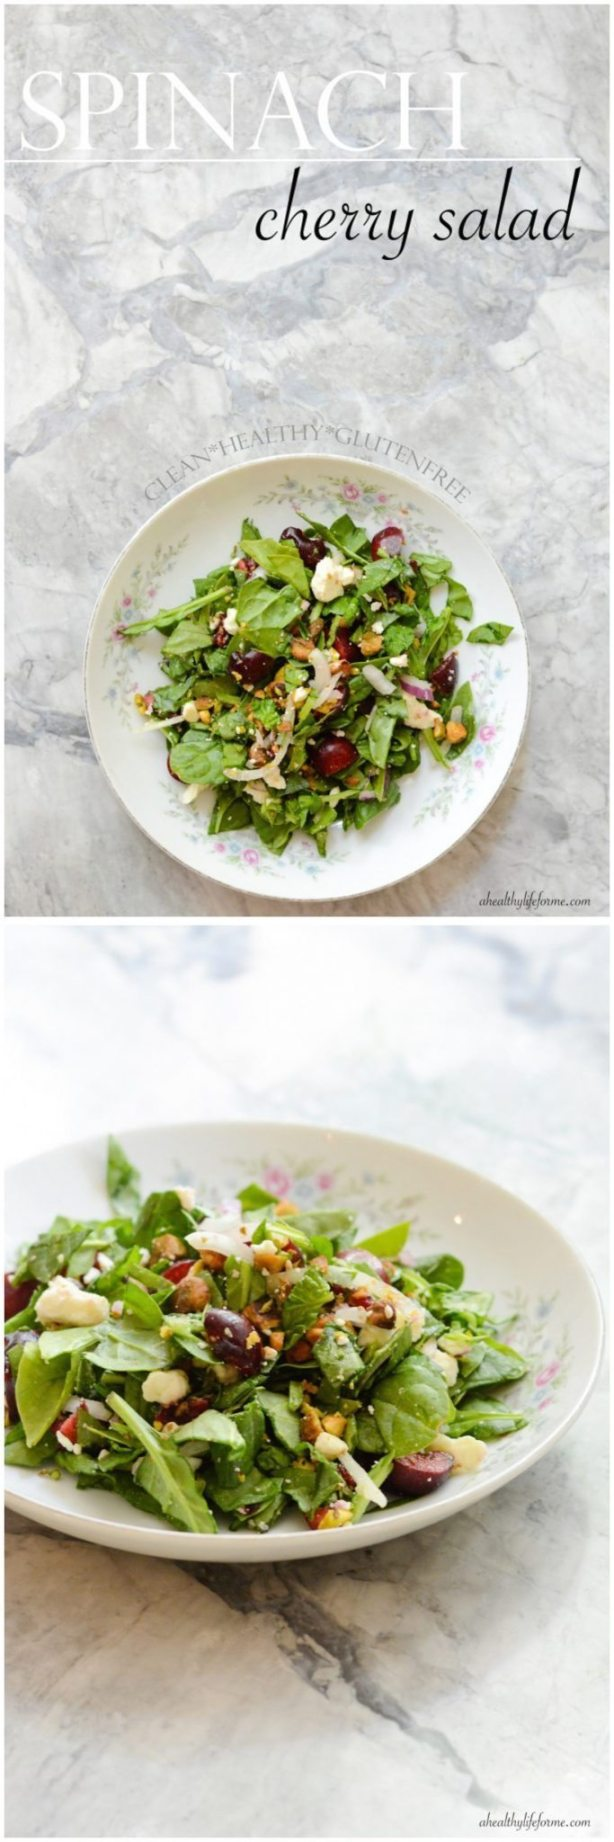 Spinach Cherry Salad